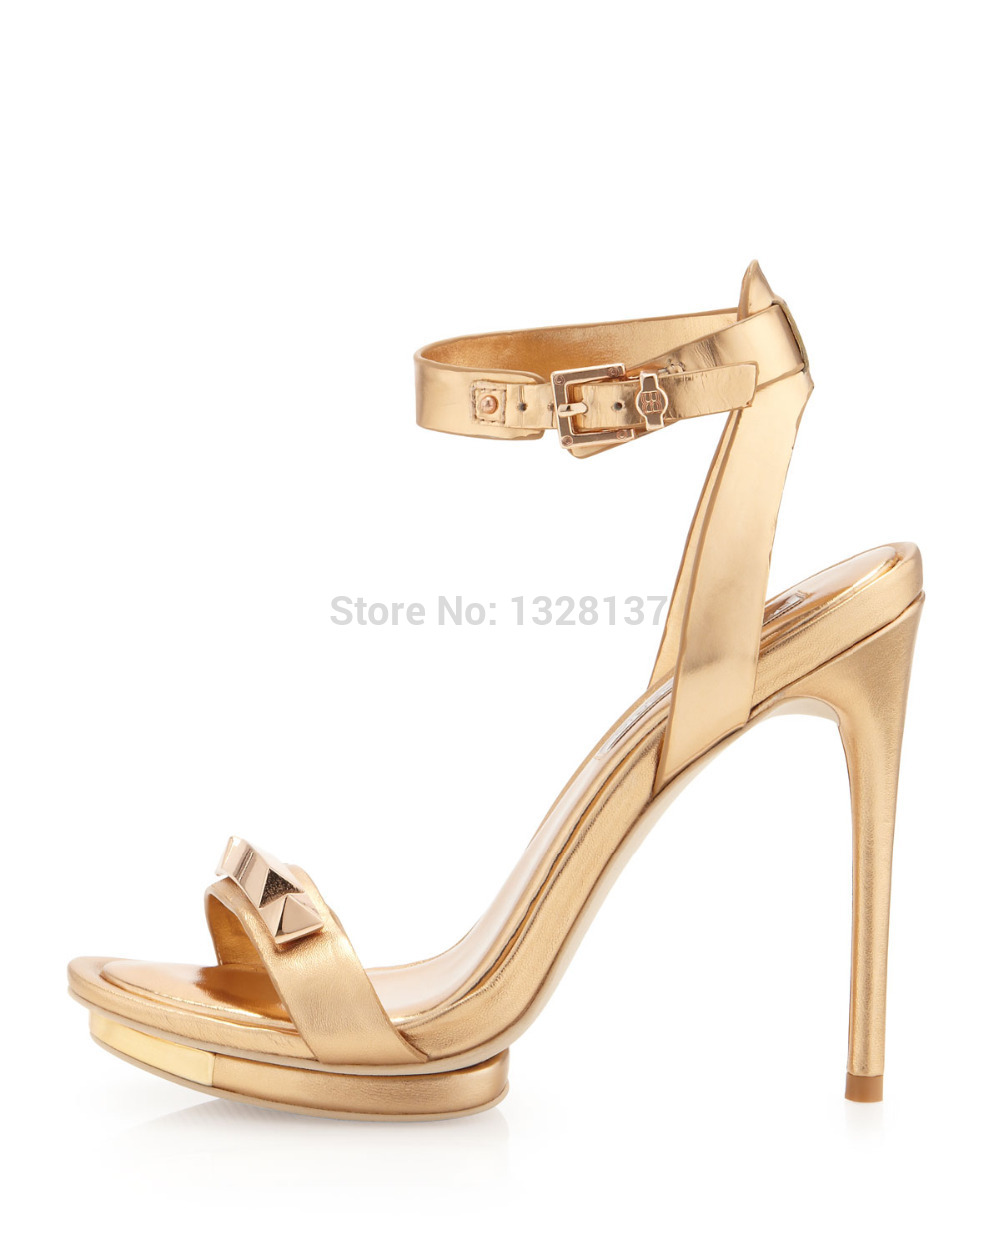 Cheap Gold High Heels For Women | Is Heel - Part 551